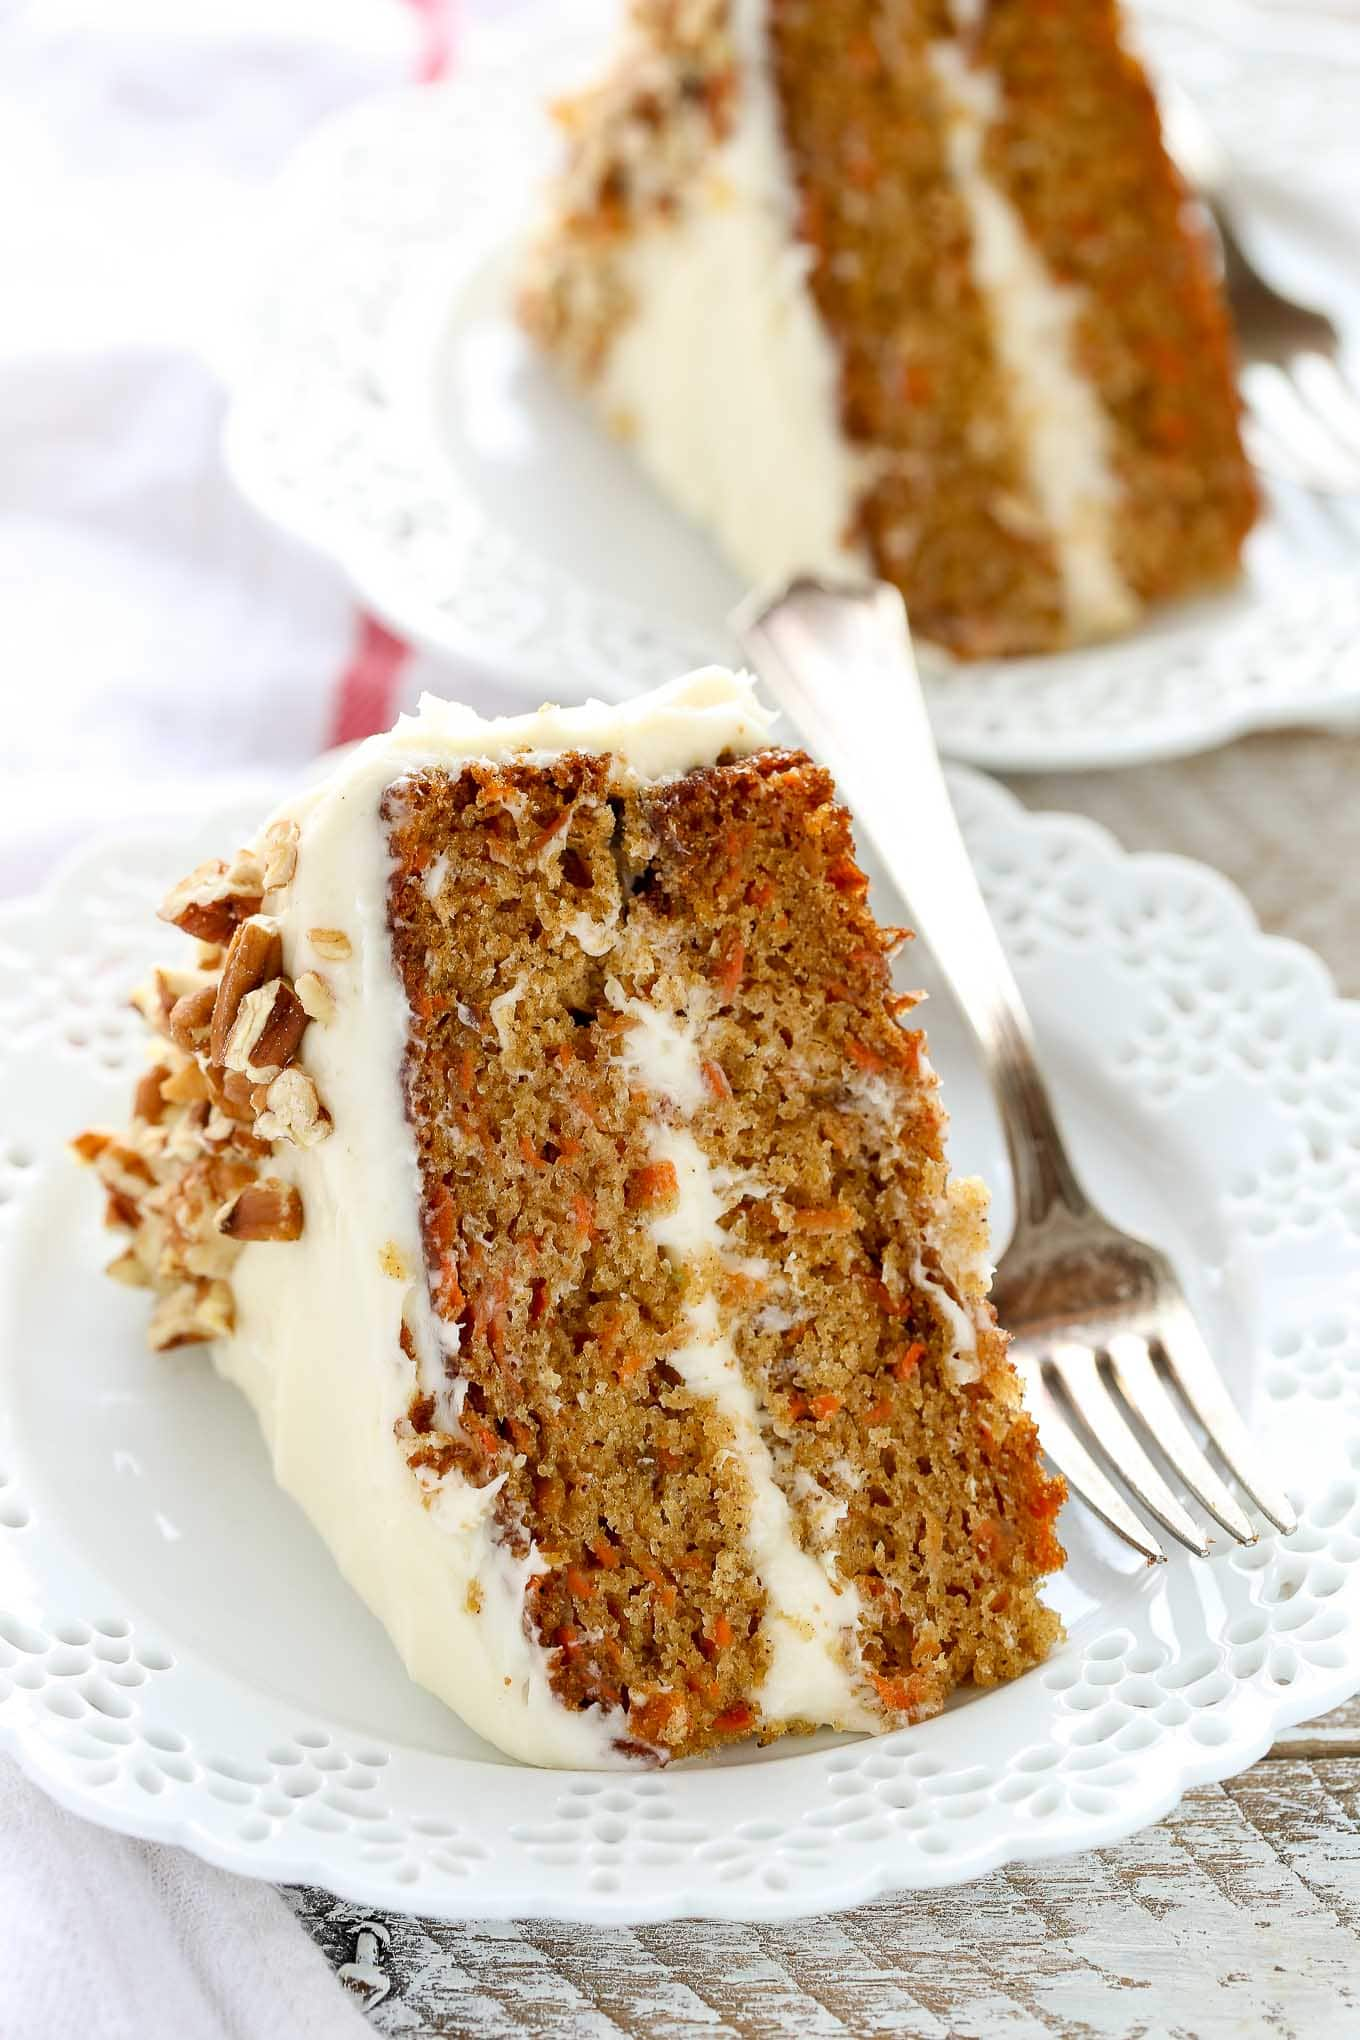 The BEST Carrot Cake Recipe This is my favorite recipe for homemade carrot cake  This cake is so easy to